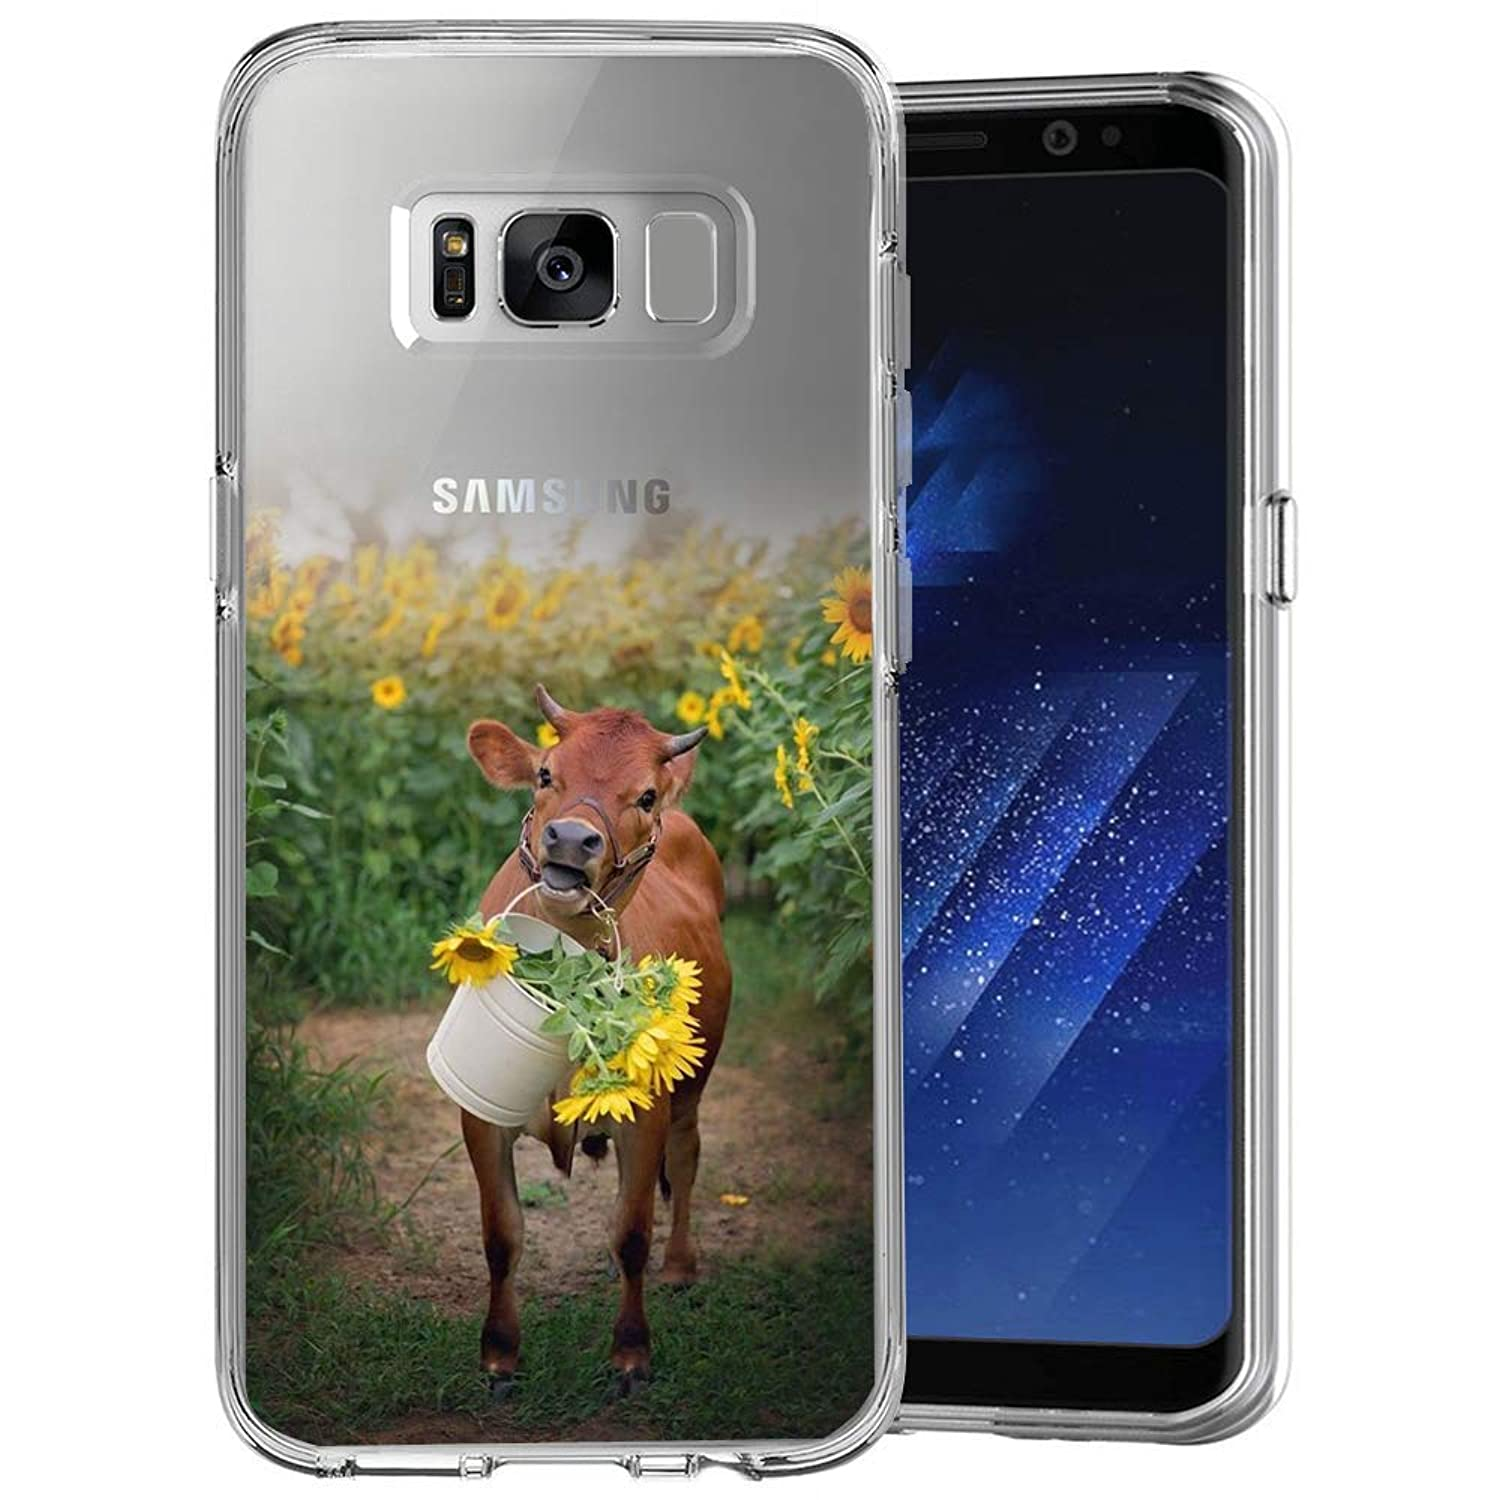 Case for Samsung Galaxy S8 Cows and Sunflowers Clear Case Shockproof Flexible Slim Soft Durable Rubber TPU Ultra-Clear Silicone Protective Case for Samsung Galaxy S8